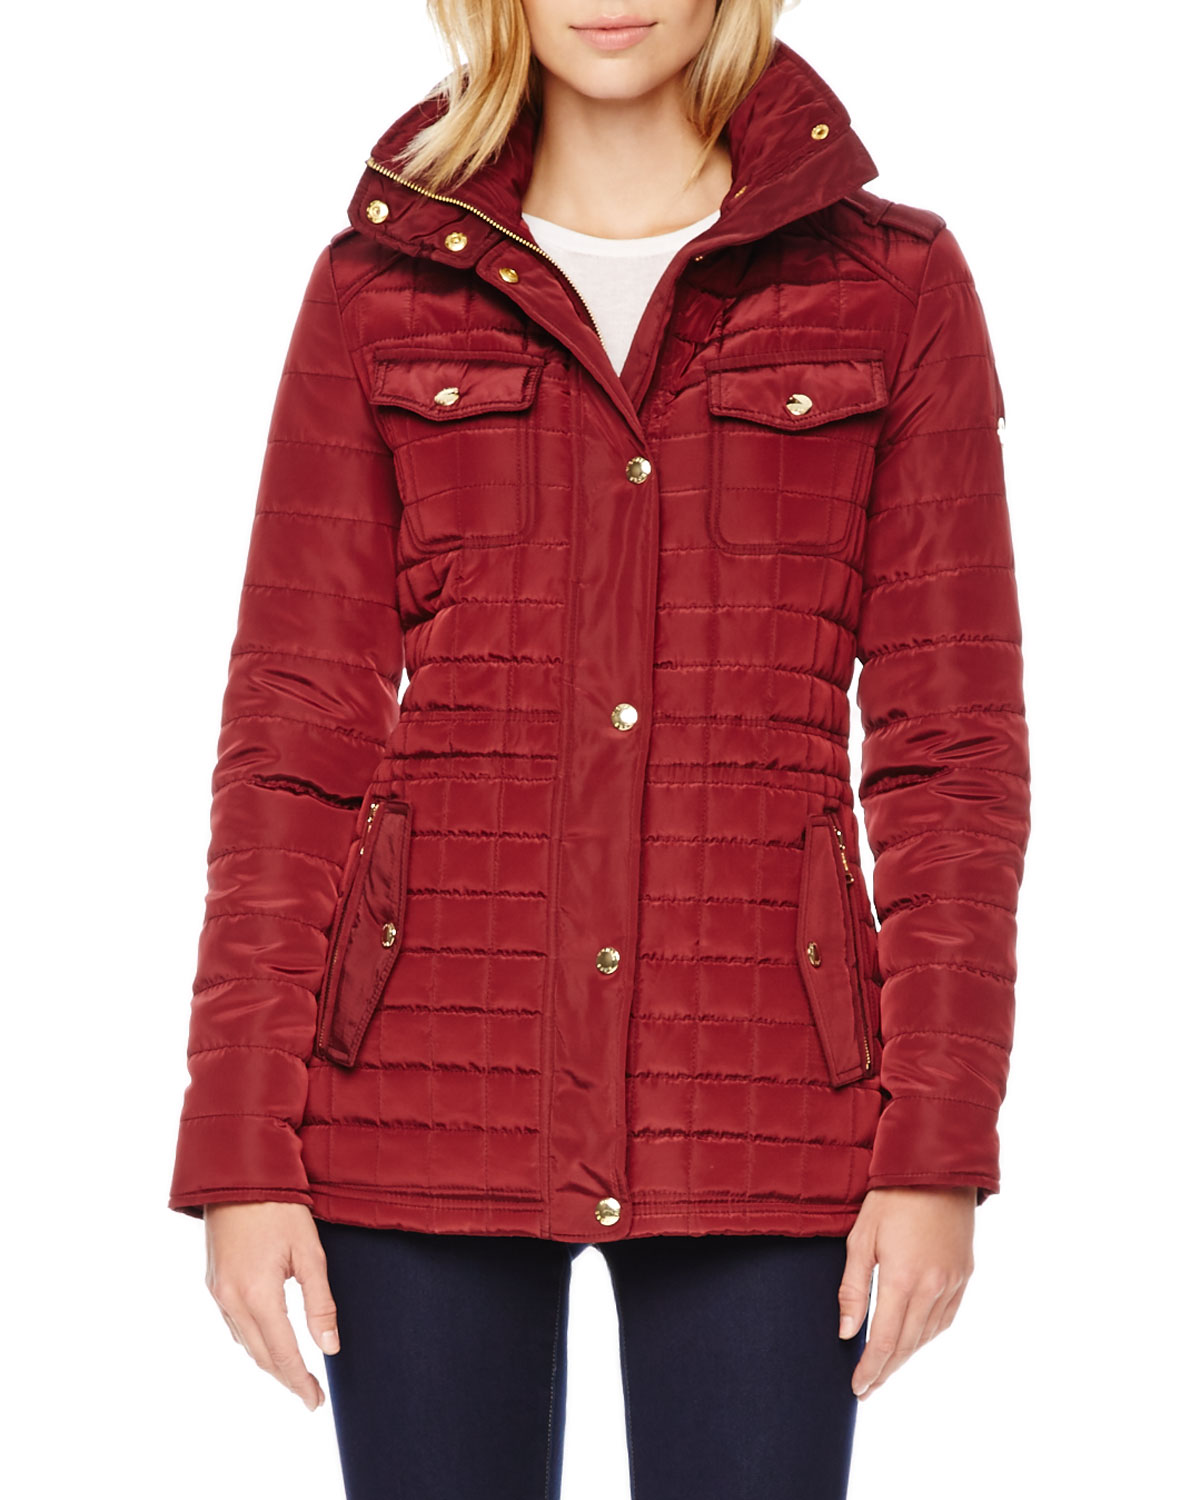 michael kors michael quilted puffer jacket in red. Black Bedroom Furniture Sets. Home Design Ideas